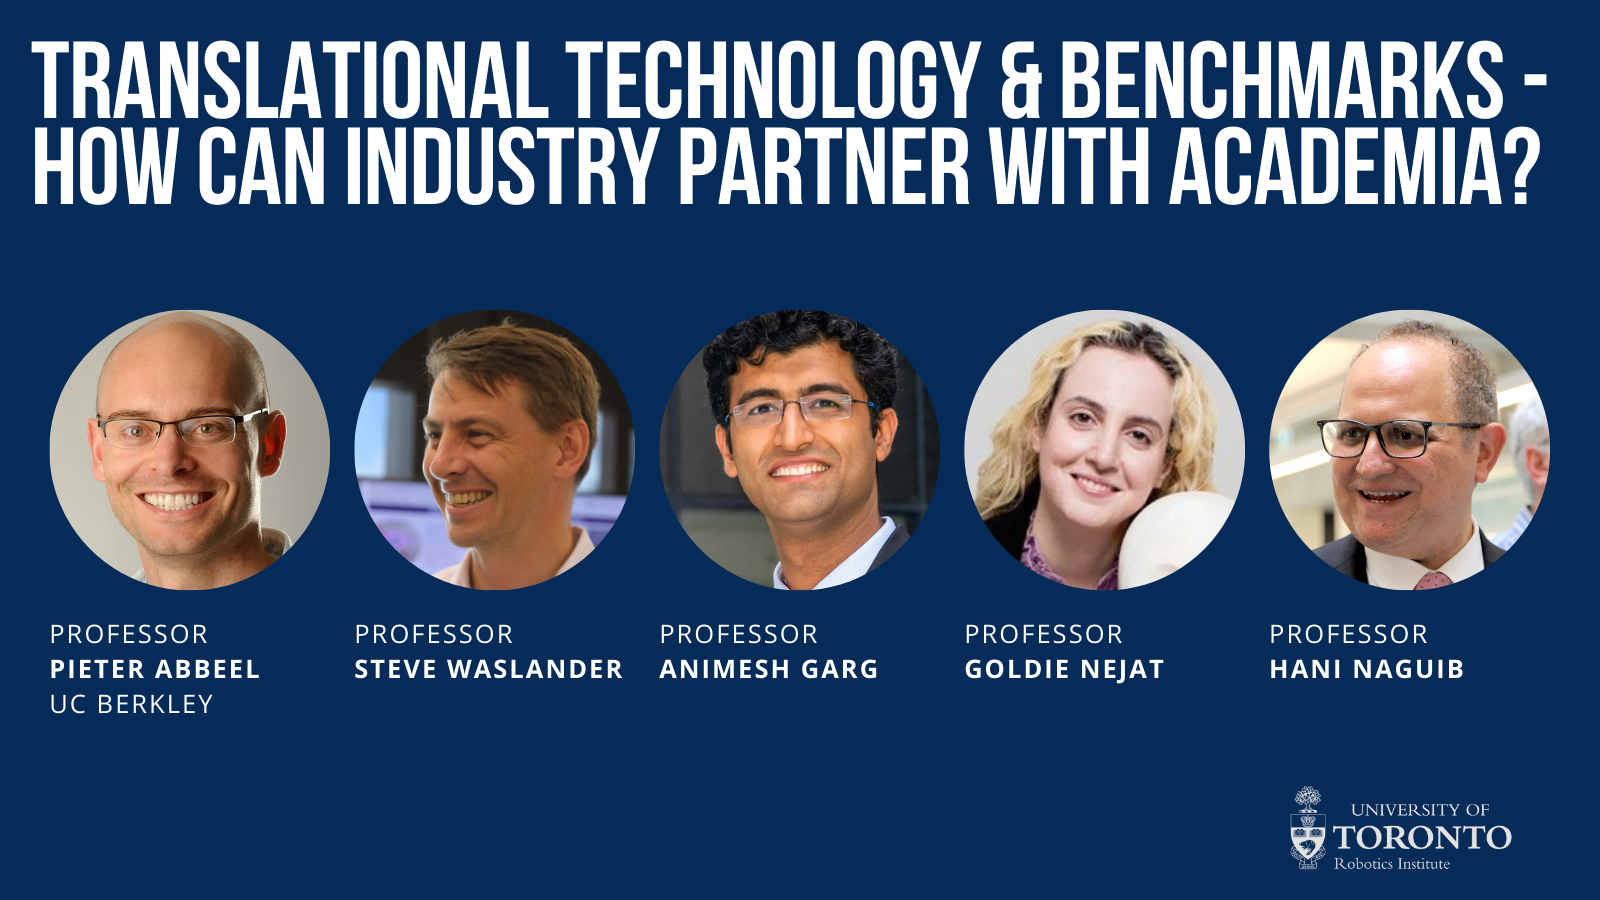 Translational Technology & Benchmarks - How Can Industry Partner With Academia